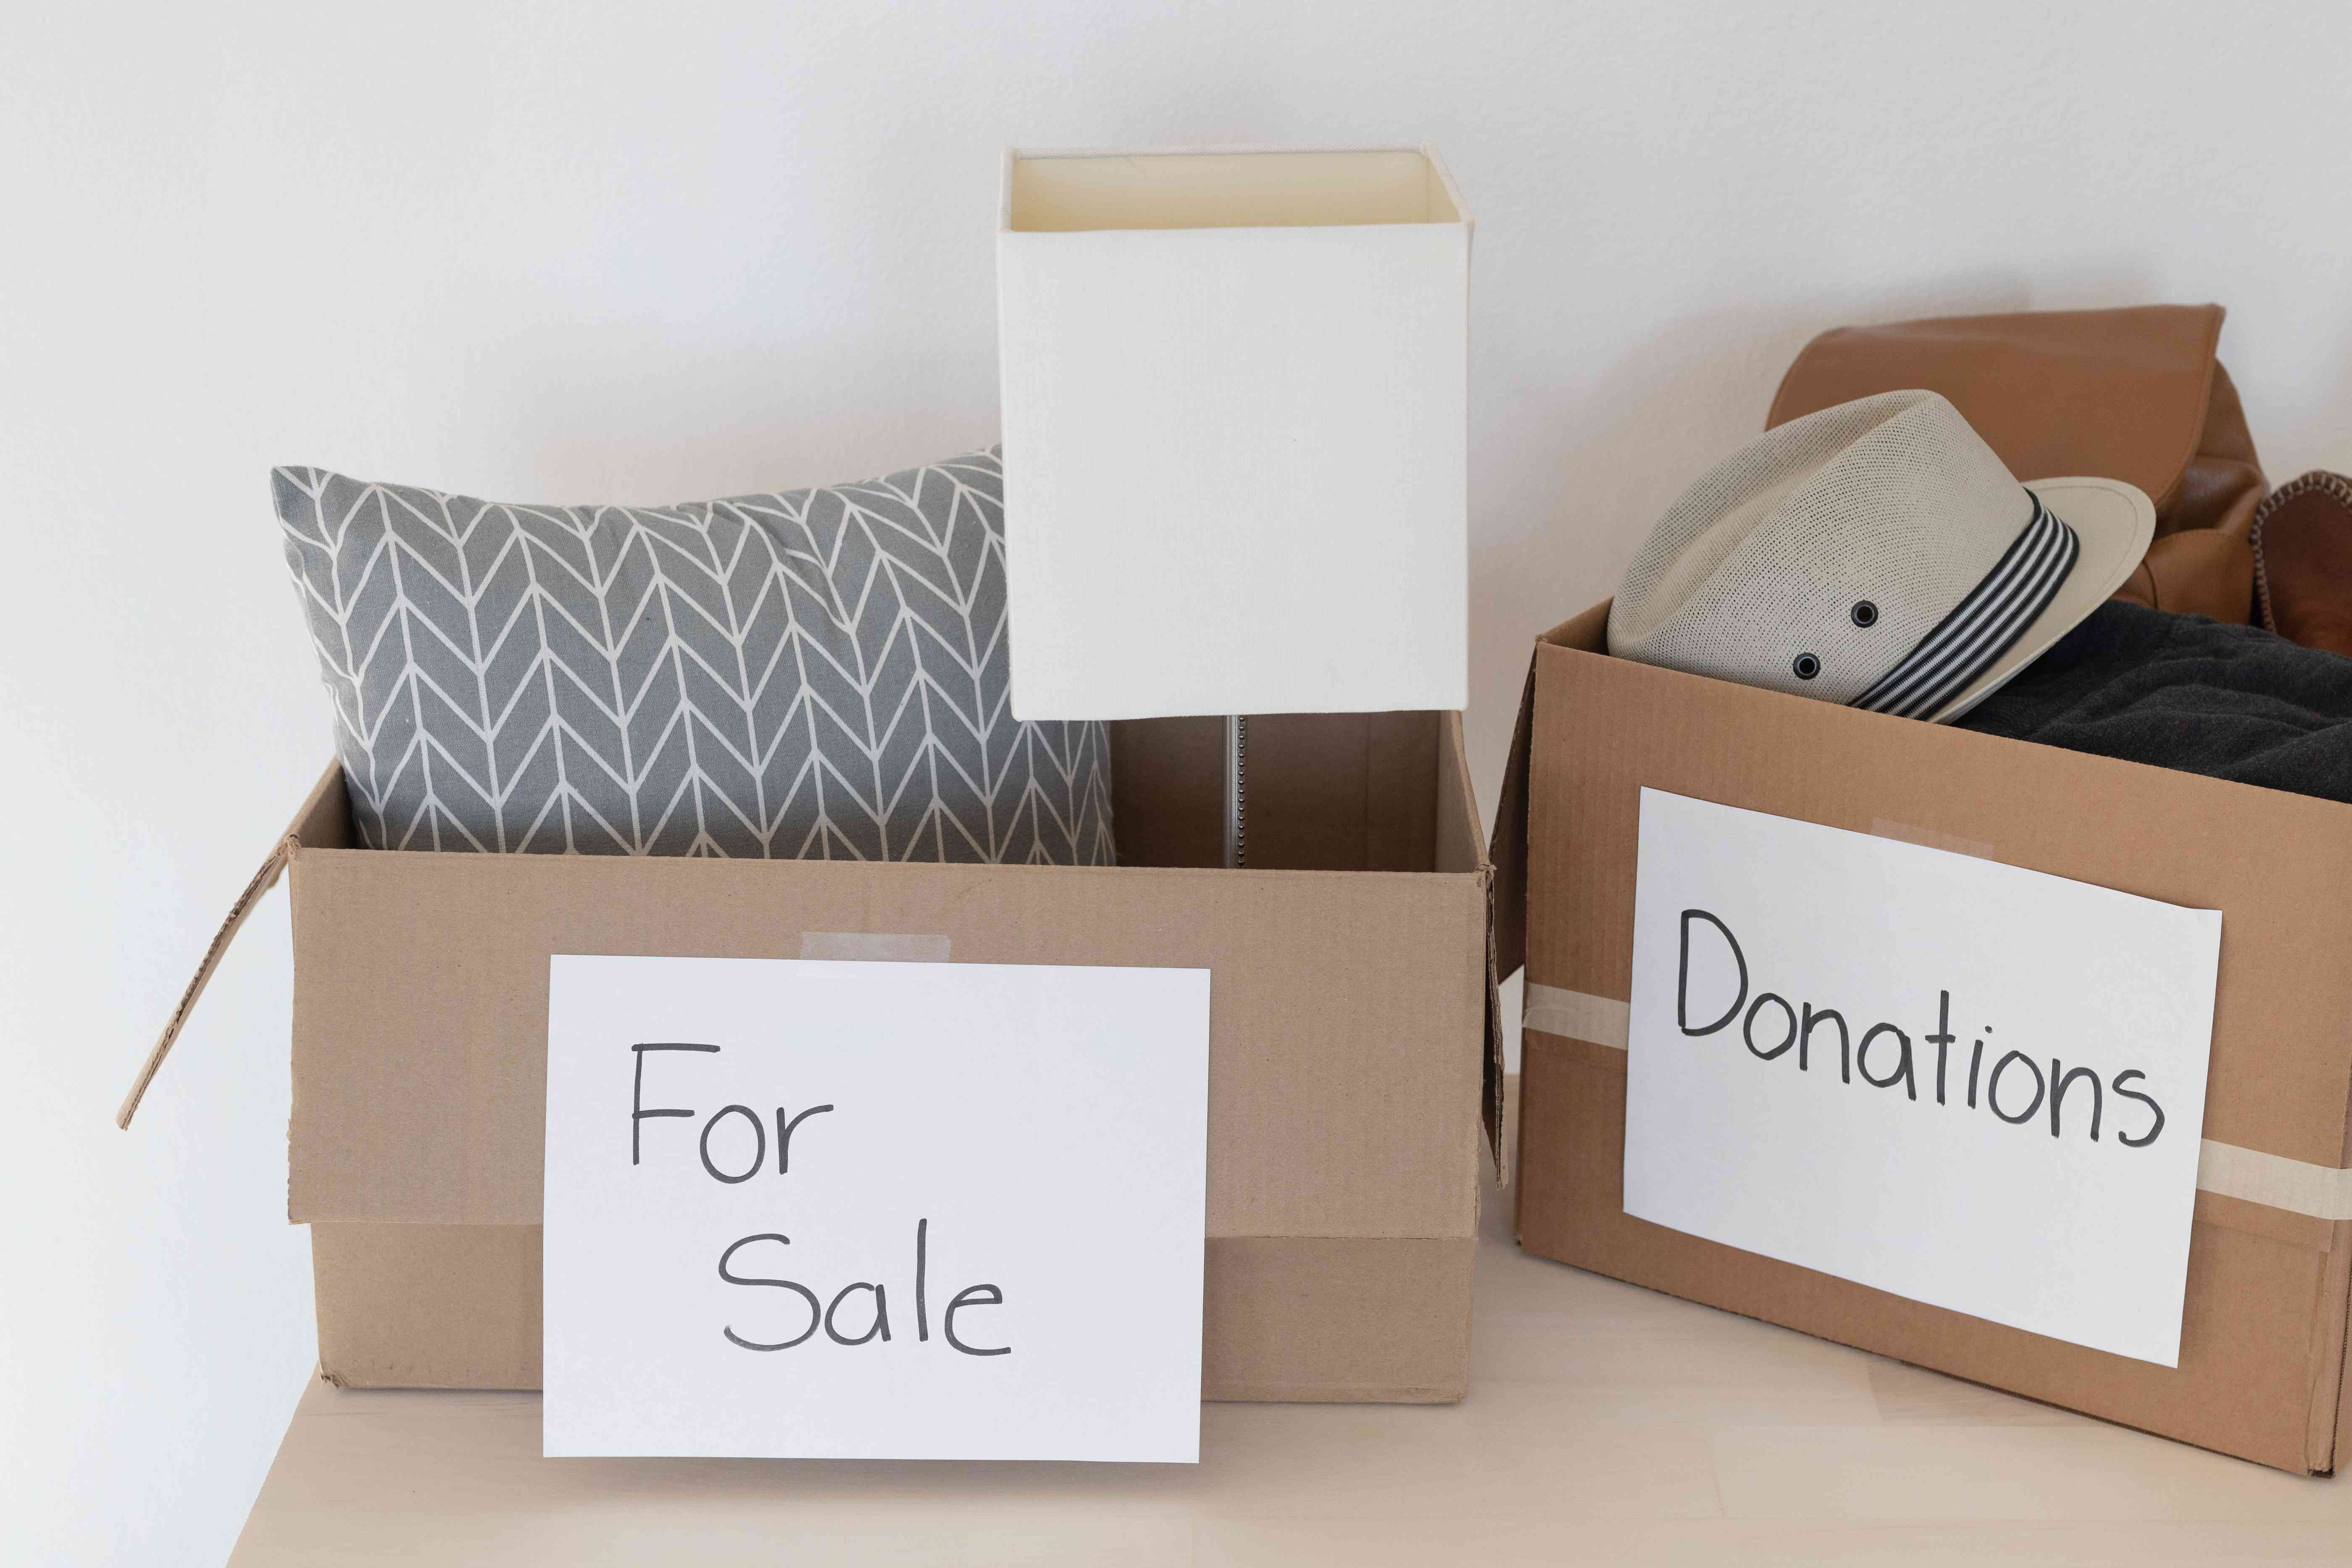 Moving boxes labeled for sale and donations with items inside